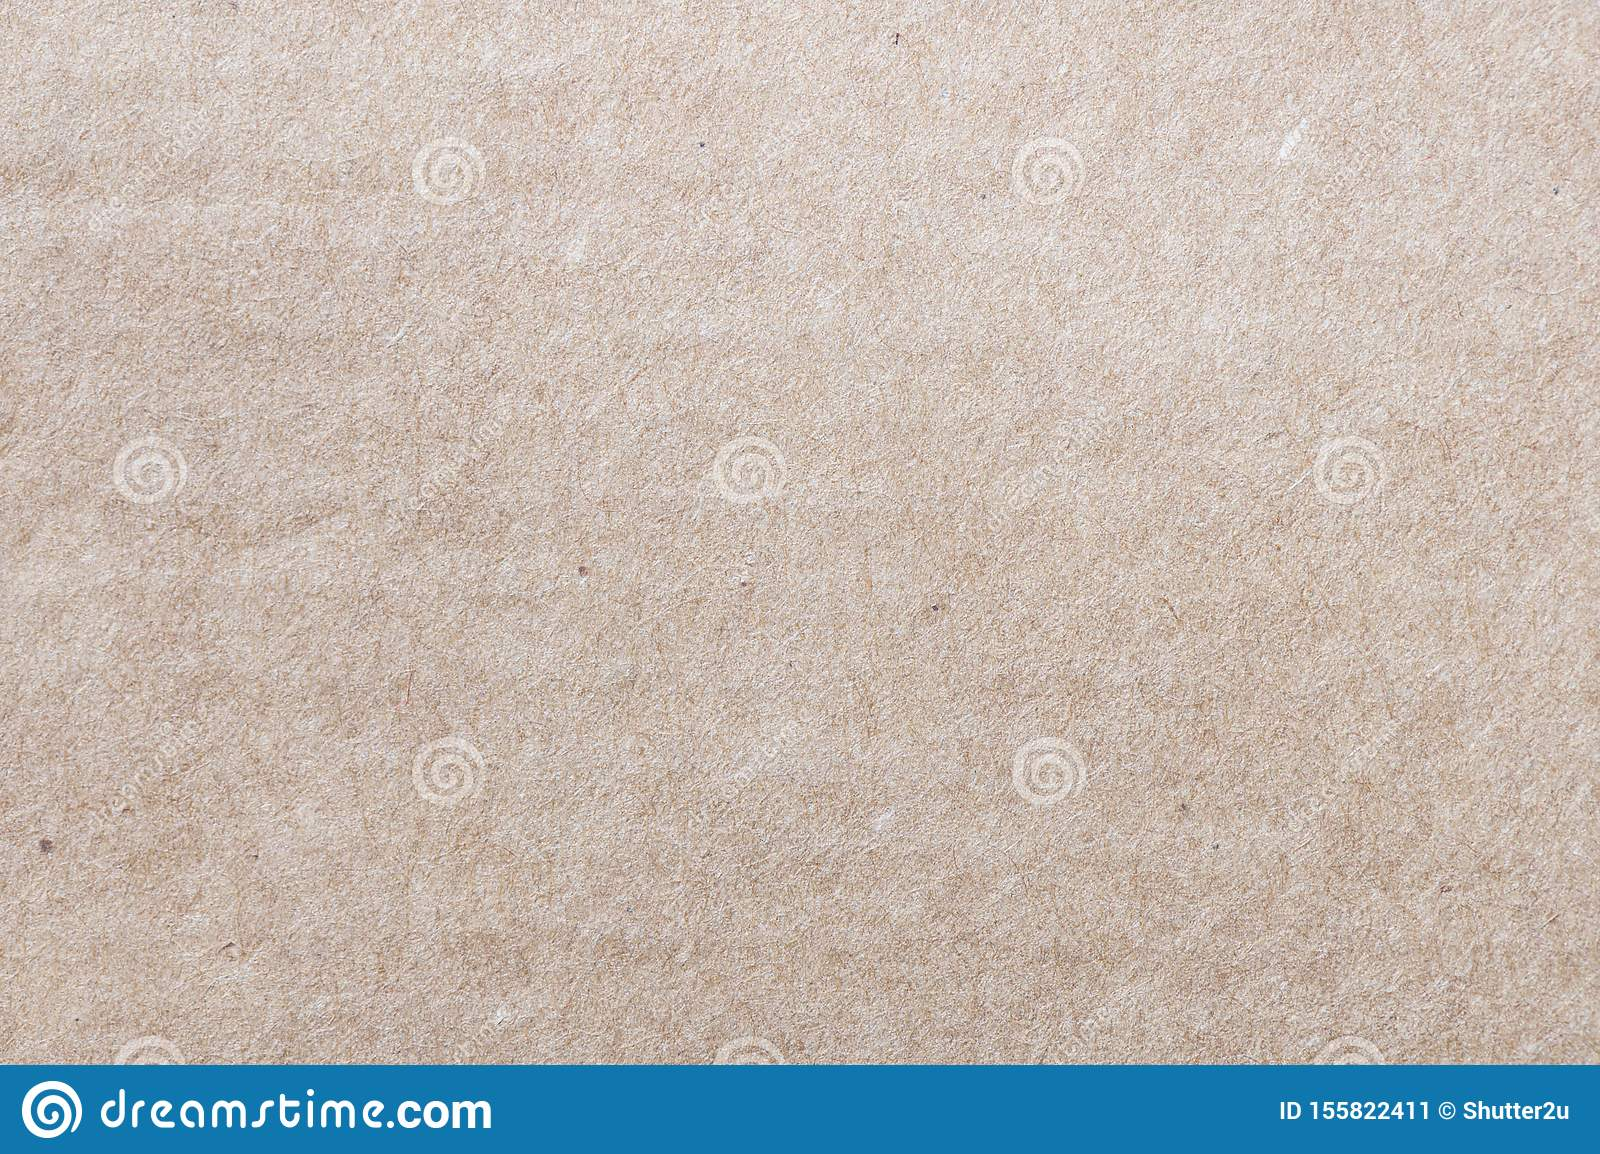 Old Brown Paper Texture Background Wallpaper Backdrop Stock